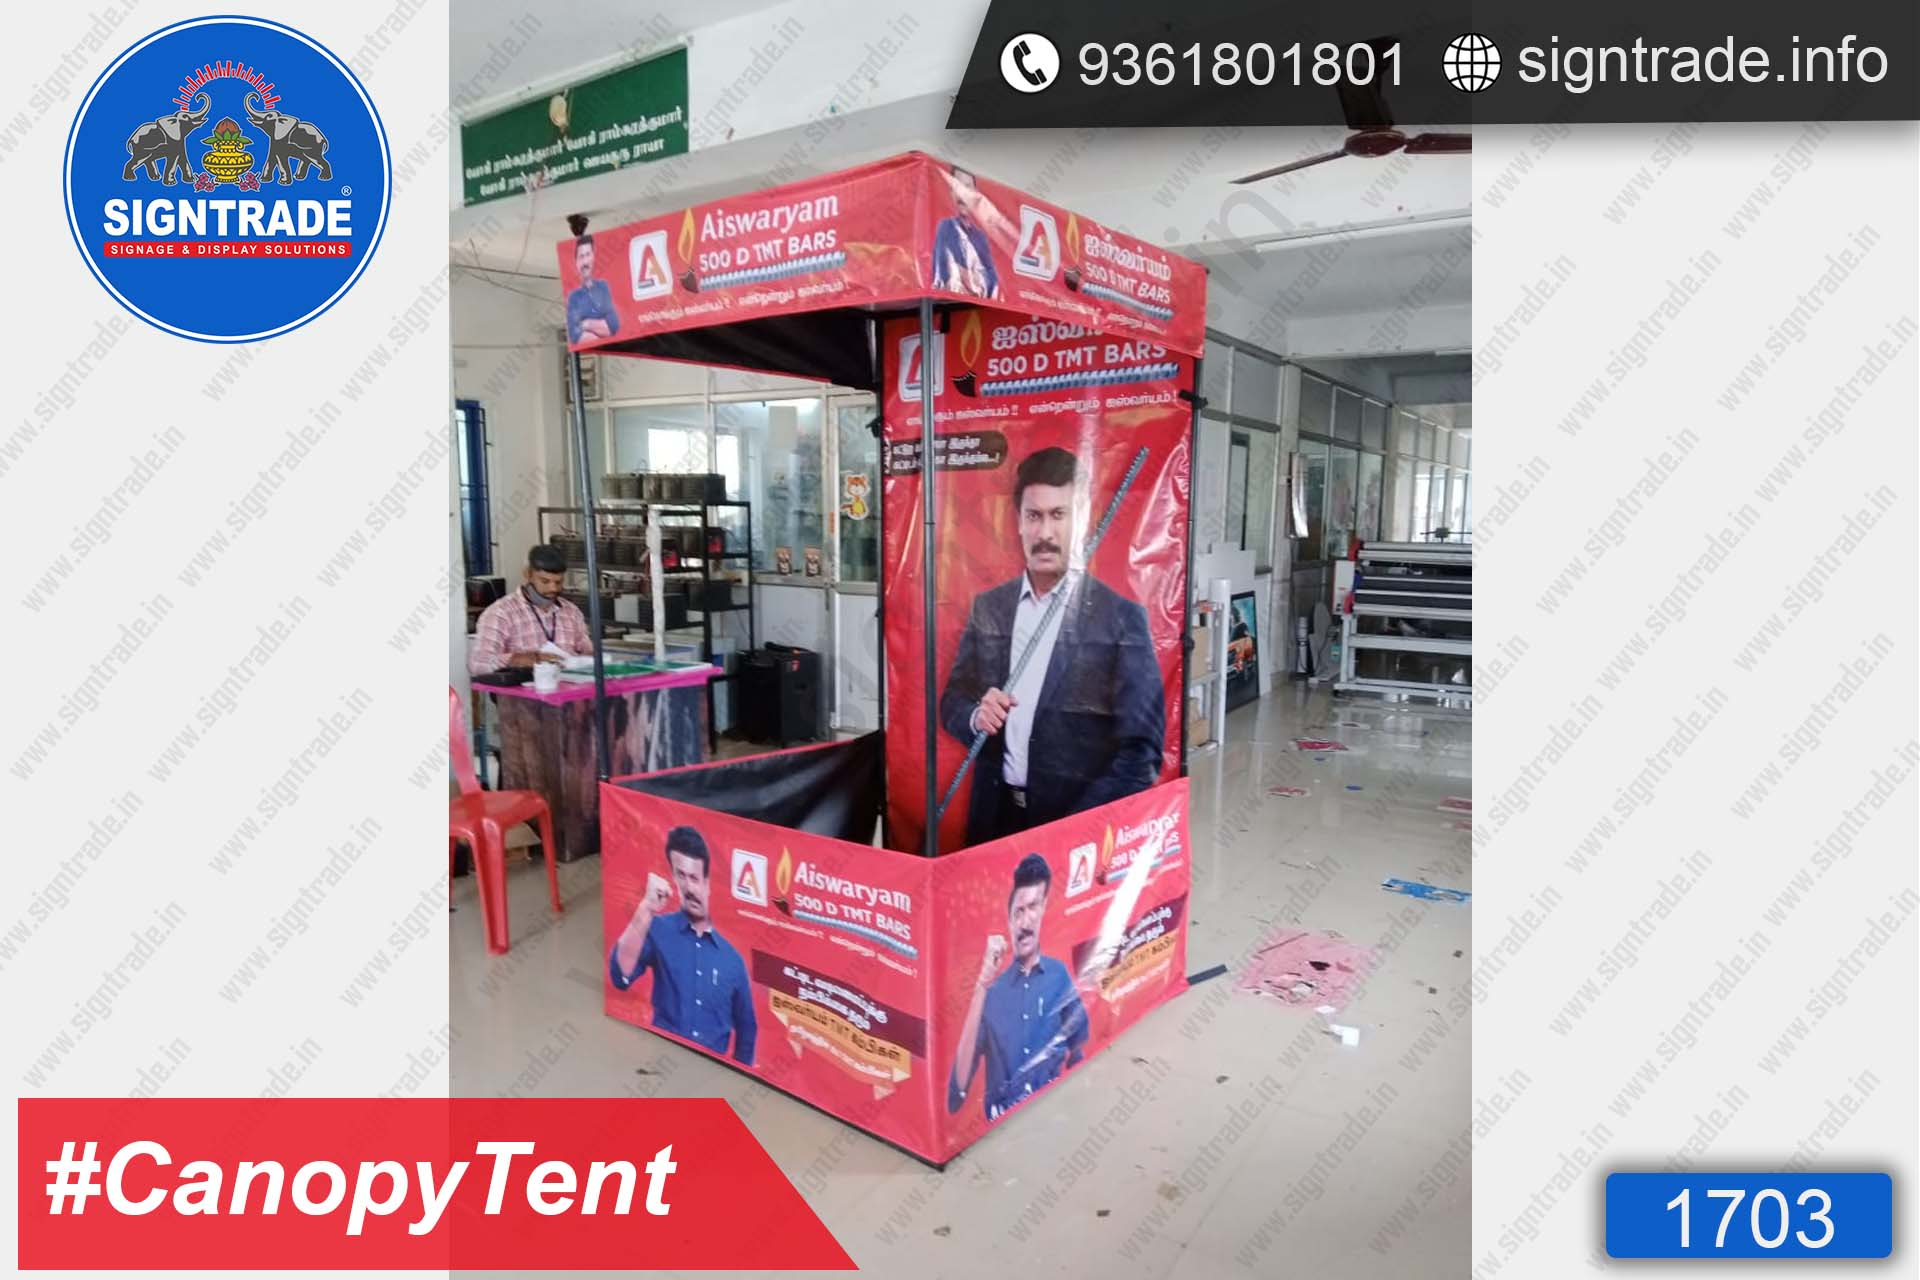 Aiswaryam 500D TMT Bars - Canopy Tent - SIGNTRADE - Promotional Canopy Tent Manufacturers in Chennai